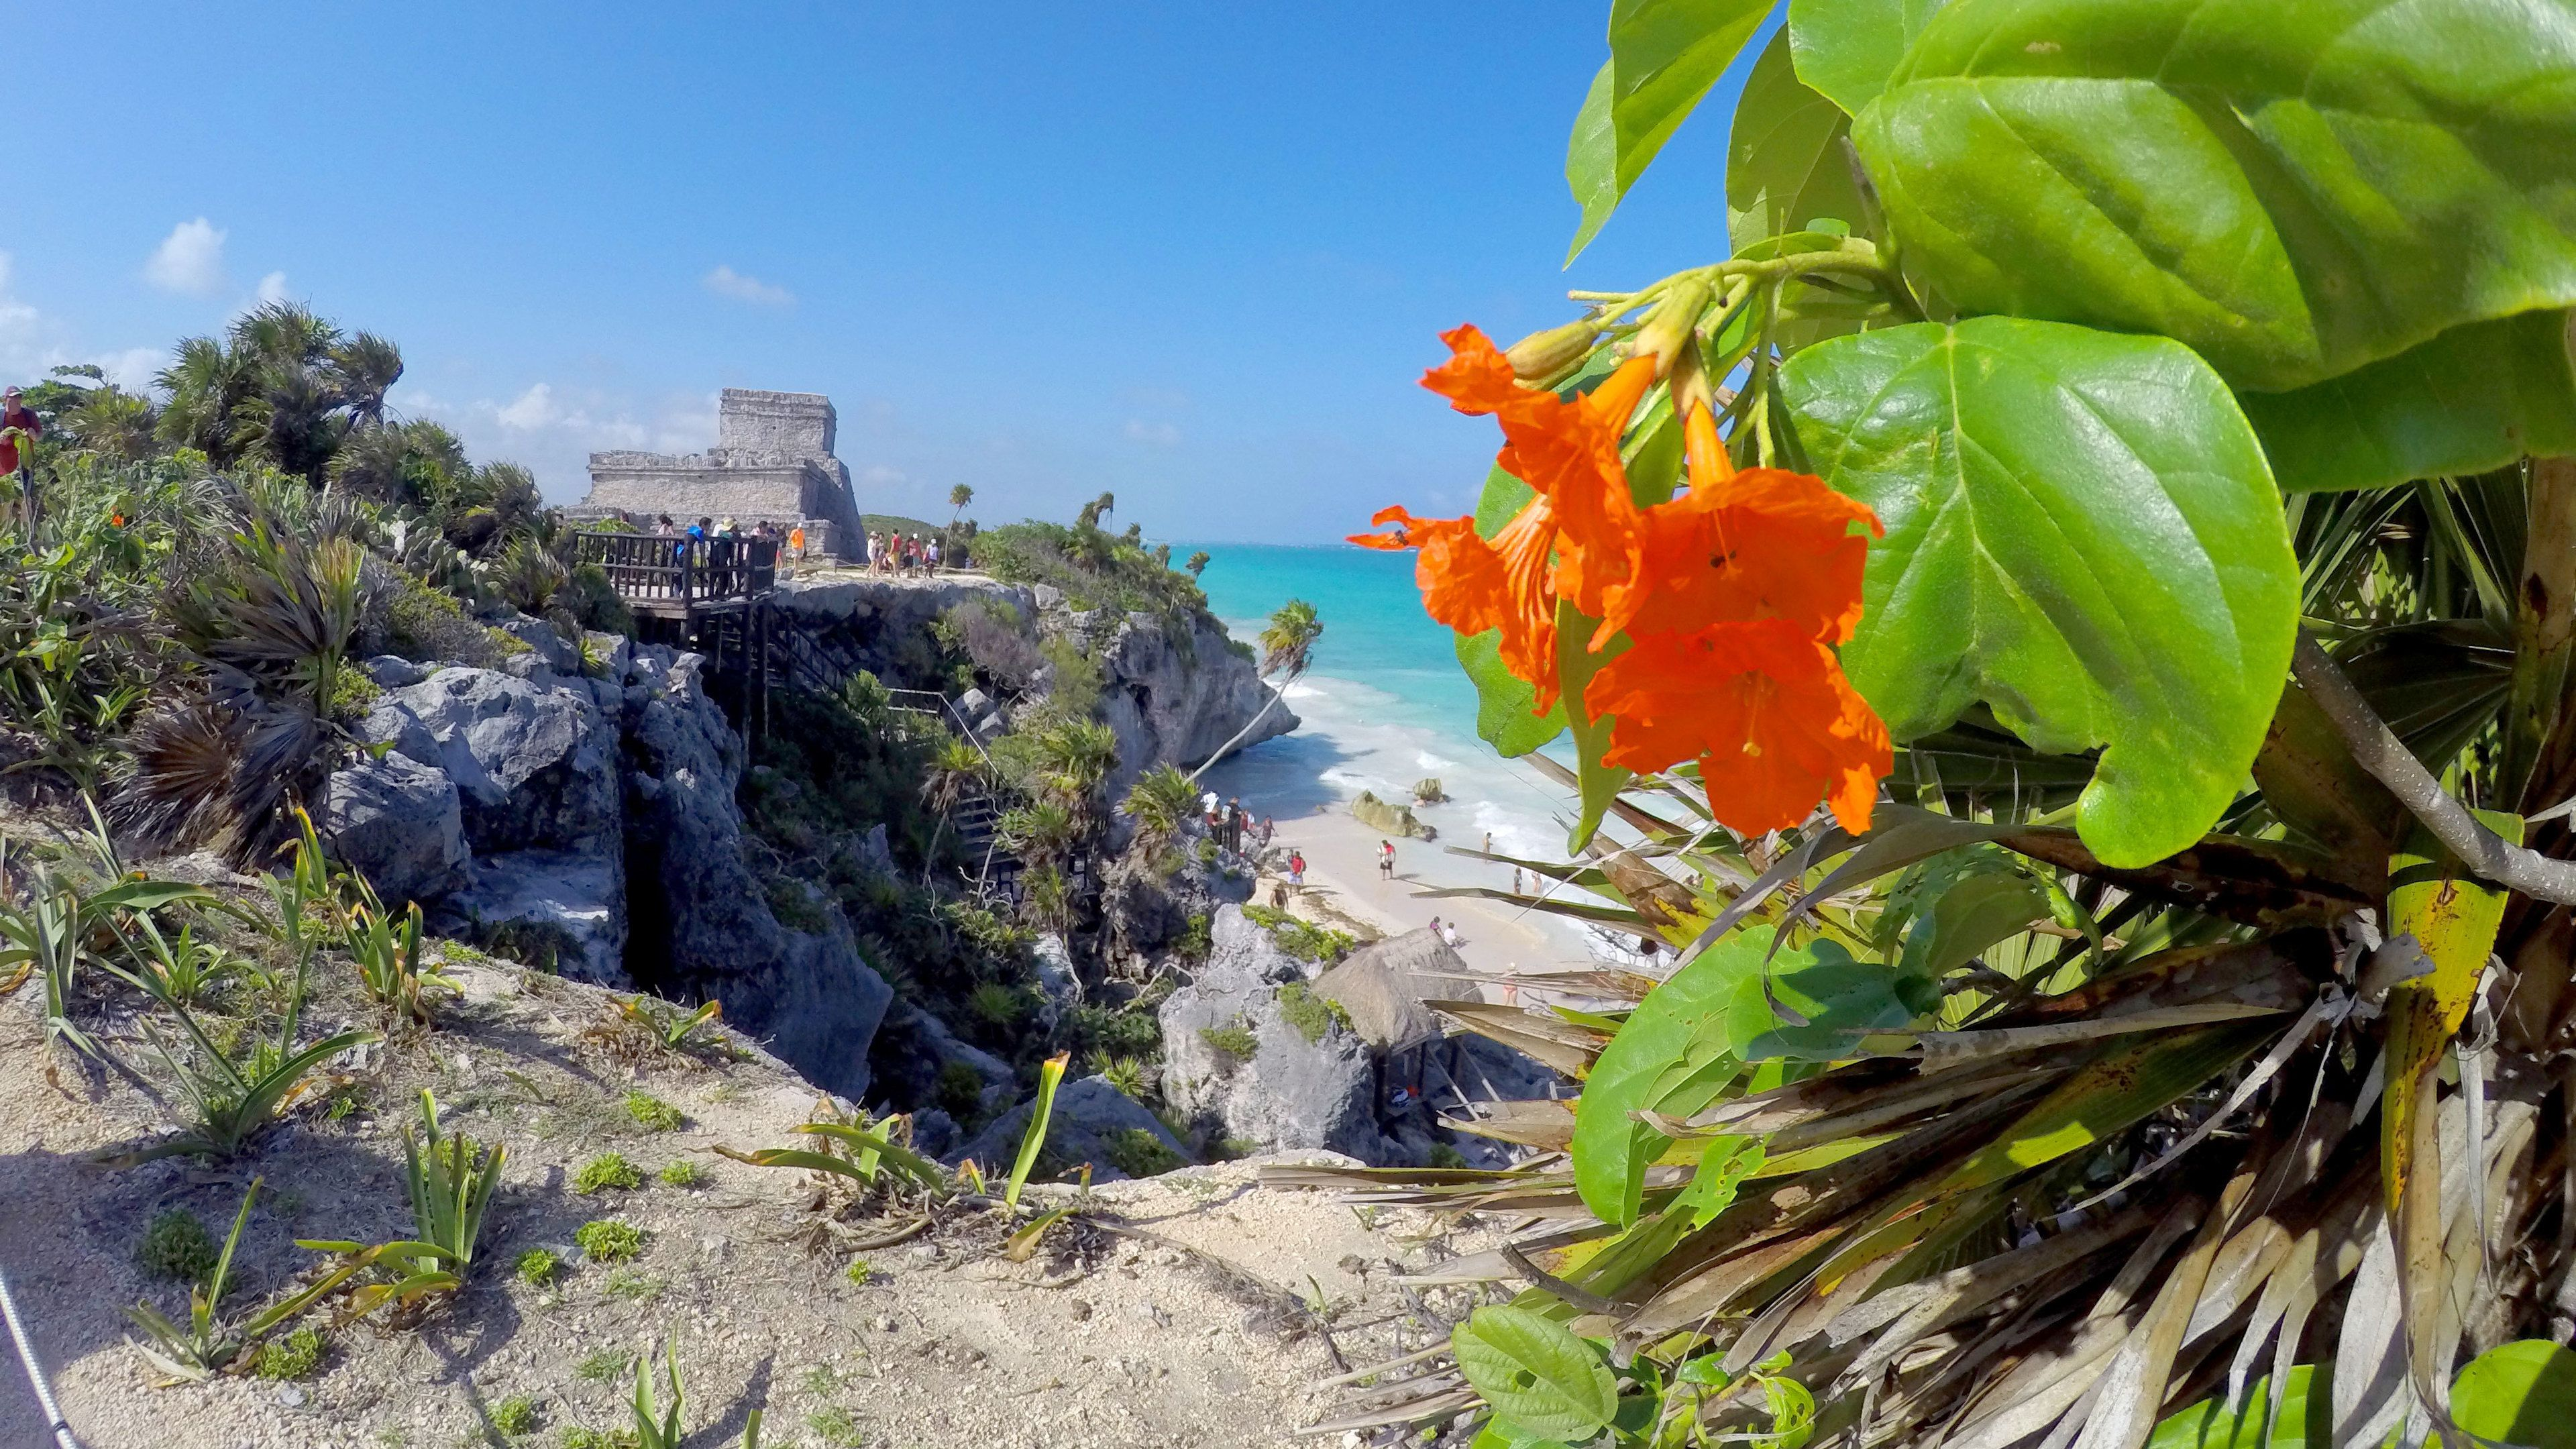 Colorful flowers on the hill with temple at Tulum in the distance